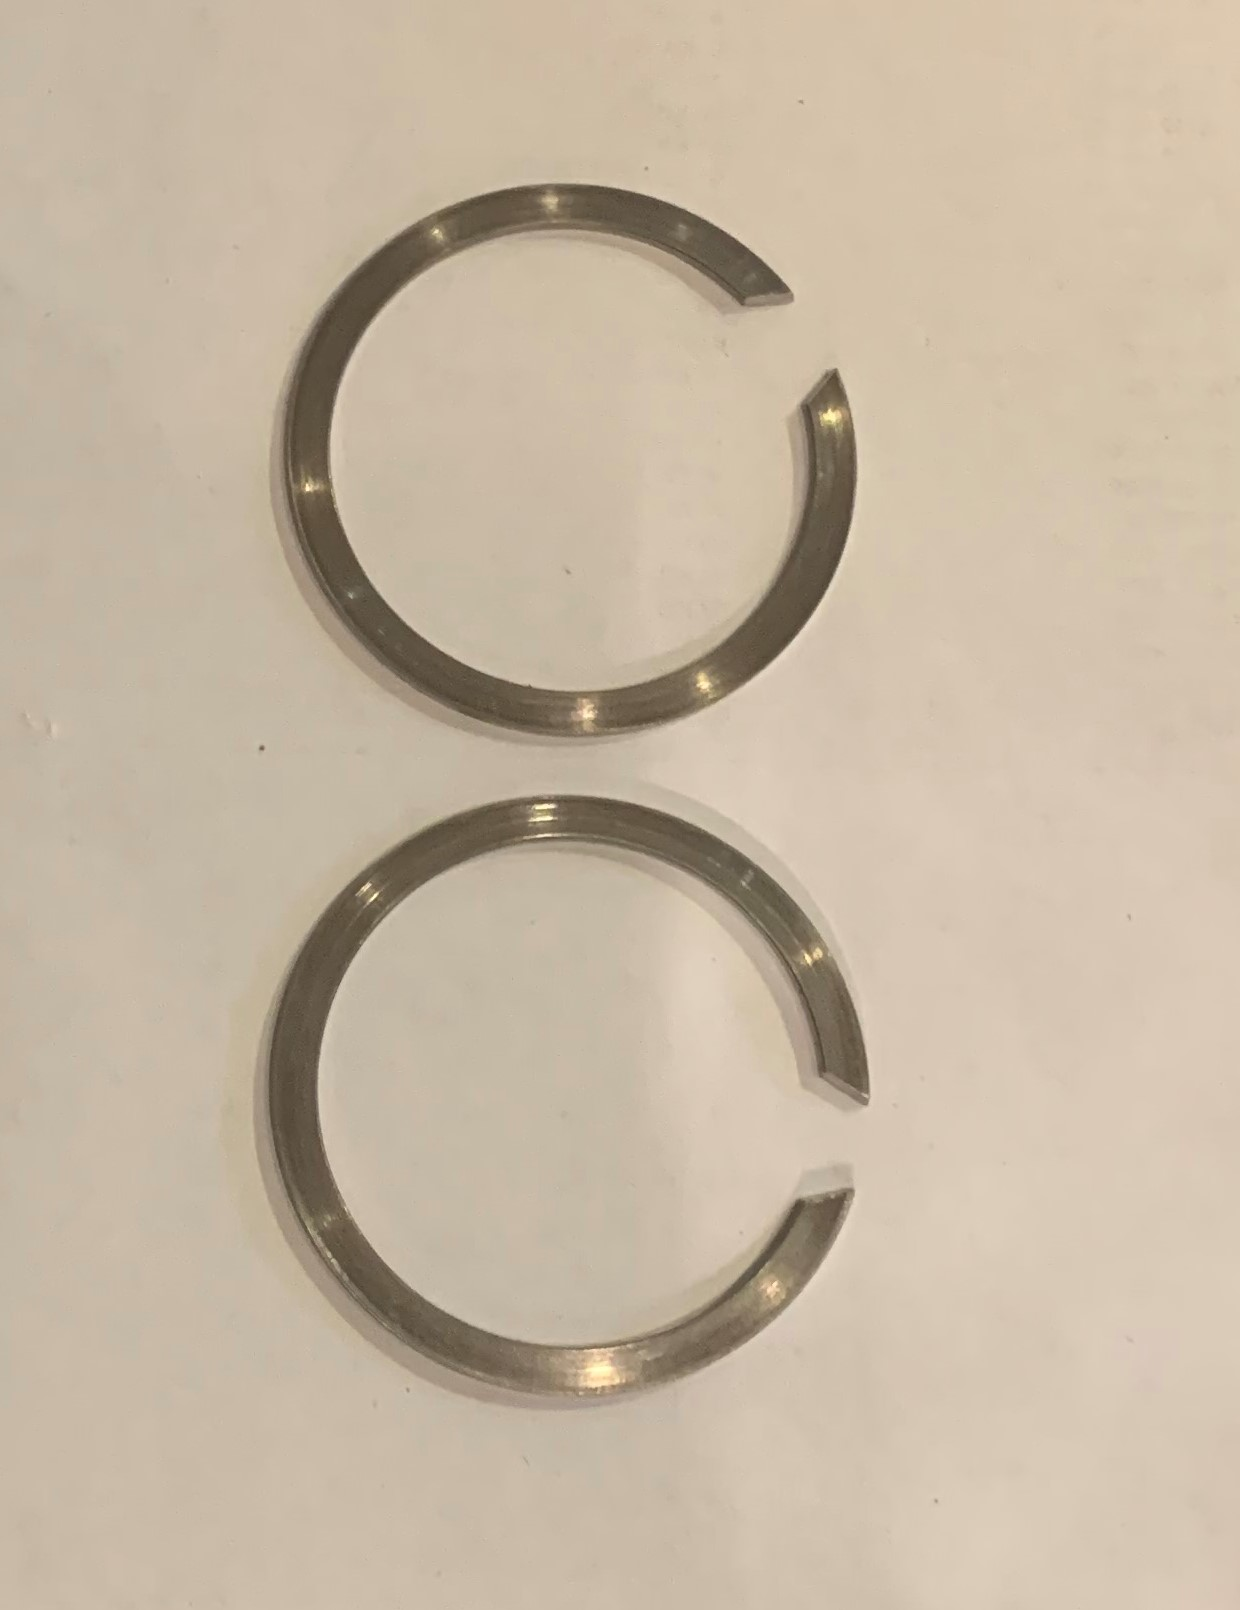 Retaining rings exhaust flange